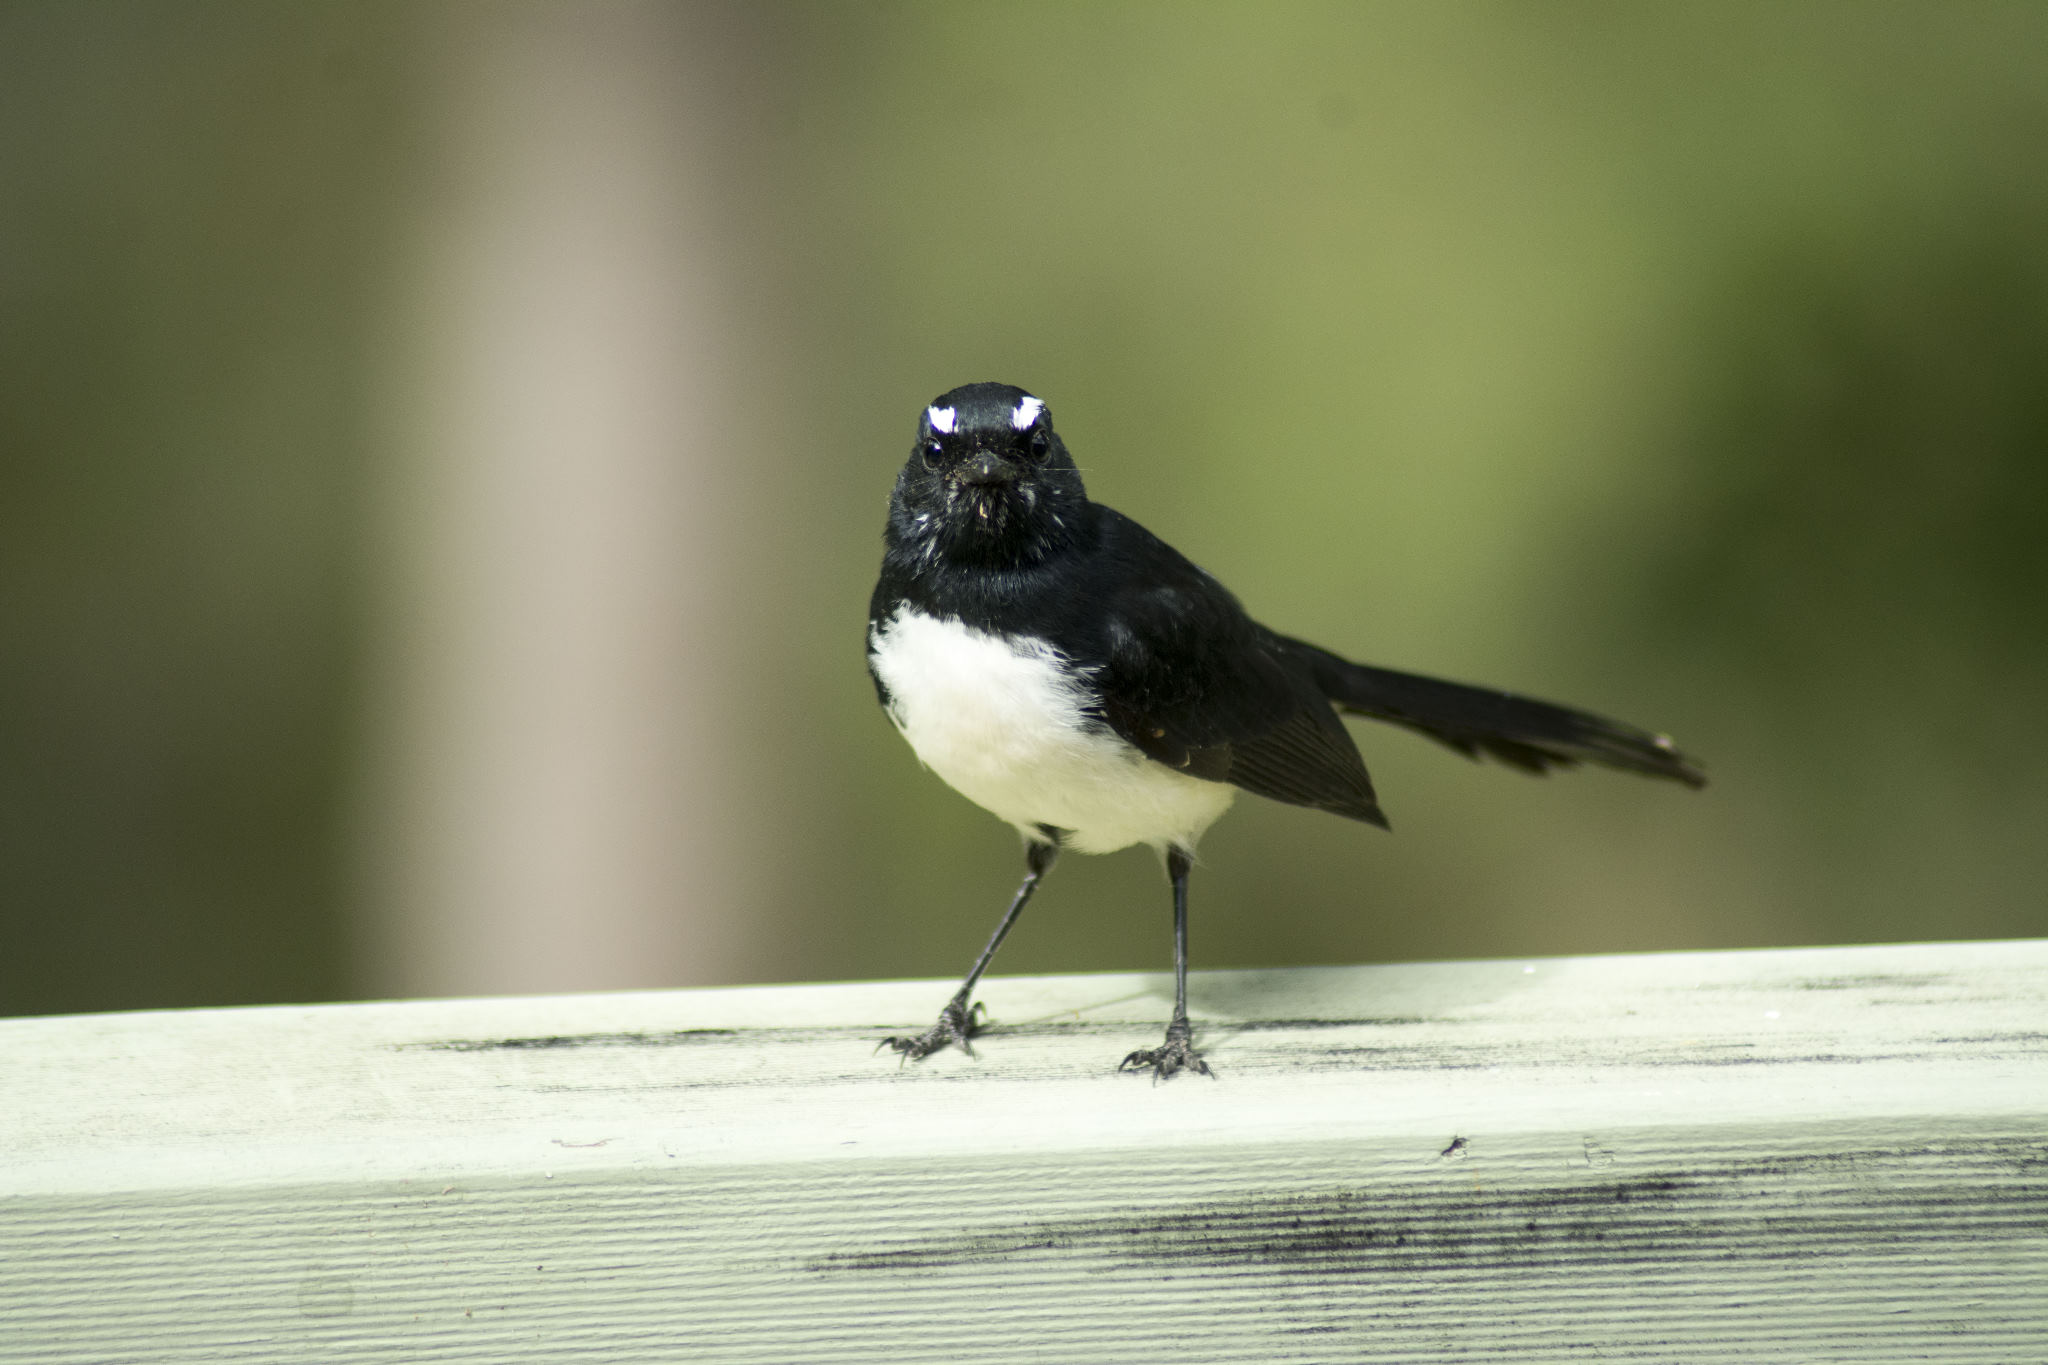 Jingeri Jingeri - Willy wagtail